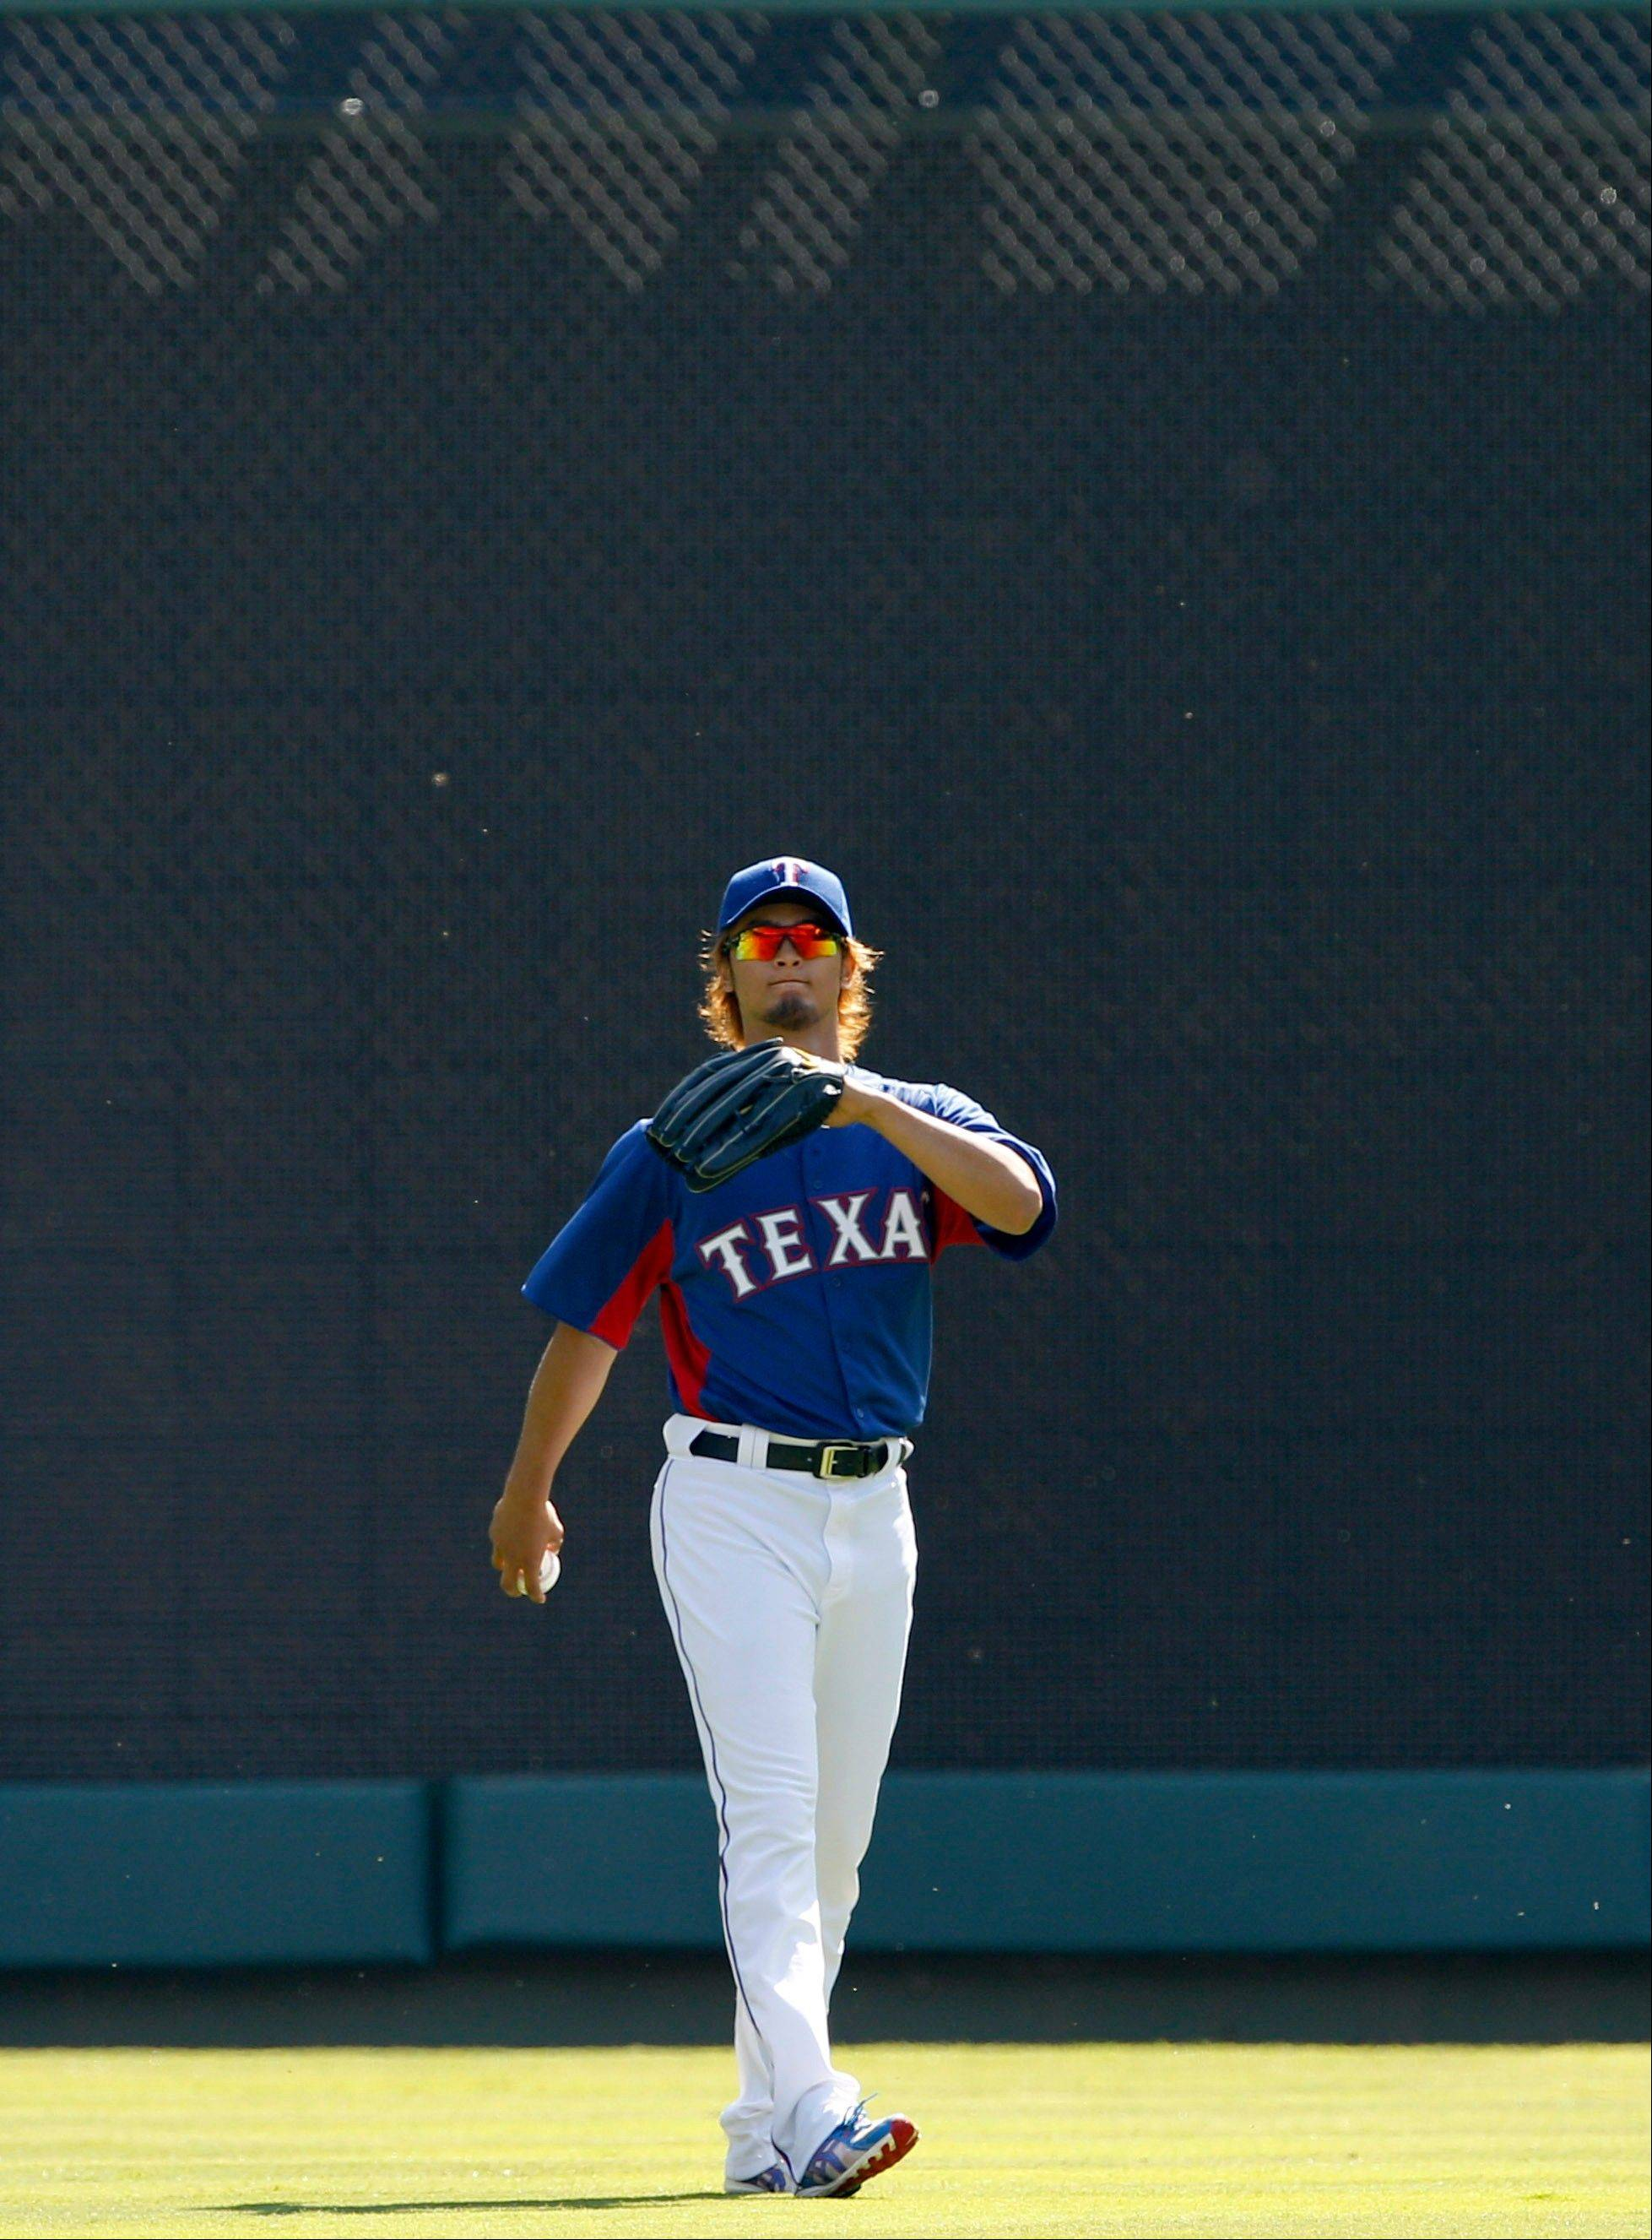 Texas Rangers starting pitcher Yu Darvish of Japan, warms up in the outfield before a baseball game against the Chicago White Sox Friday, April 6, 2012 in Arlington, Texas.